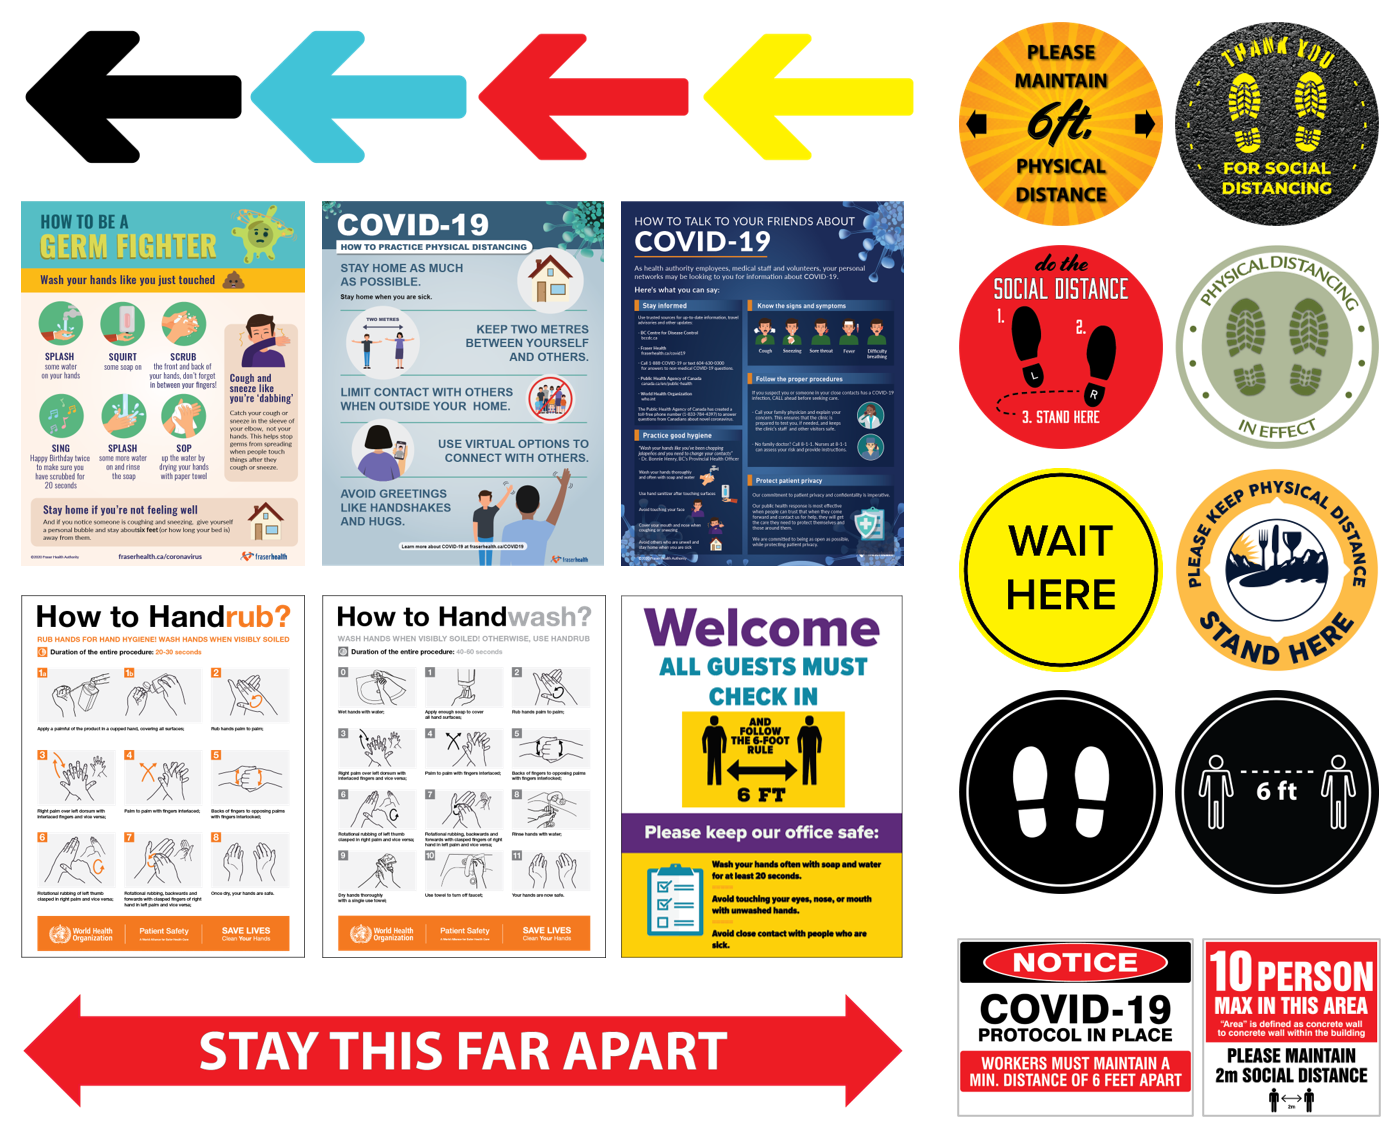 Covid-19 Info Posters and Floor Decals/Stickers